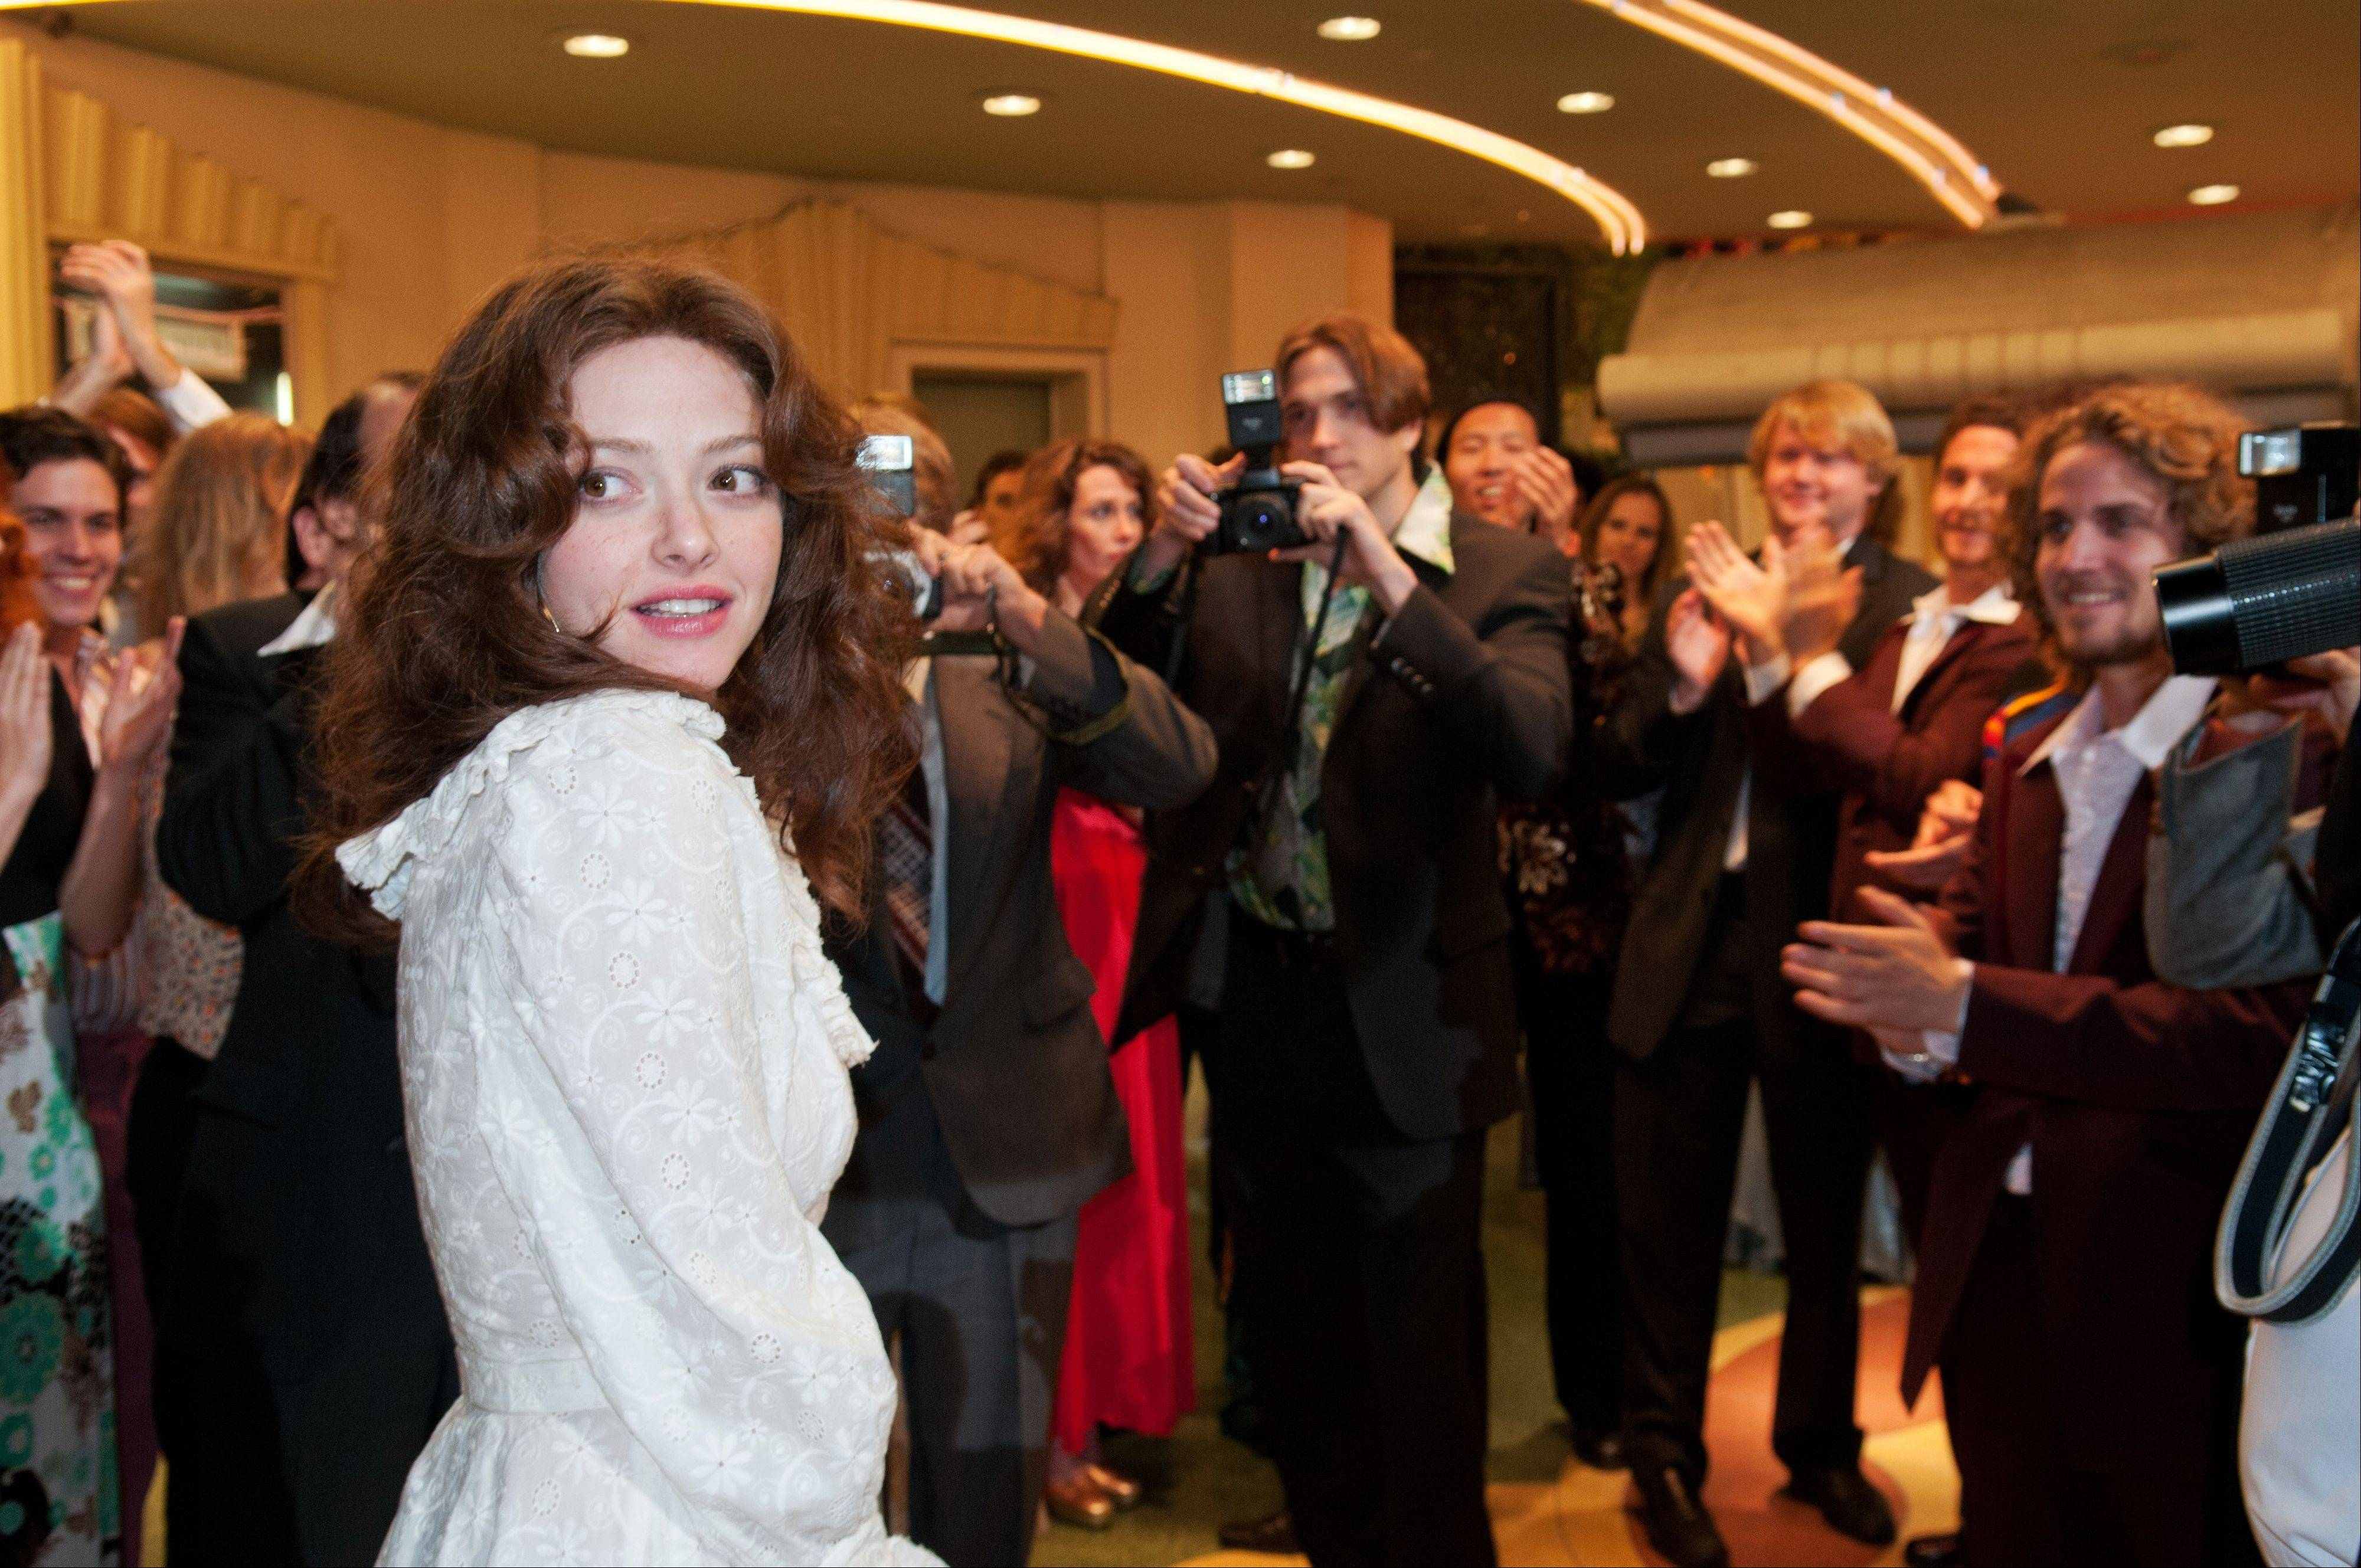 Amanda Seyfried plays Linda Lovelace in the film, �Lovelace,� directed by Rob Epstein and Jeffrey Friedman. The film will be part of the lineup at the Sundance Film Festival starting Thursday.